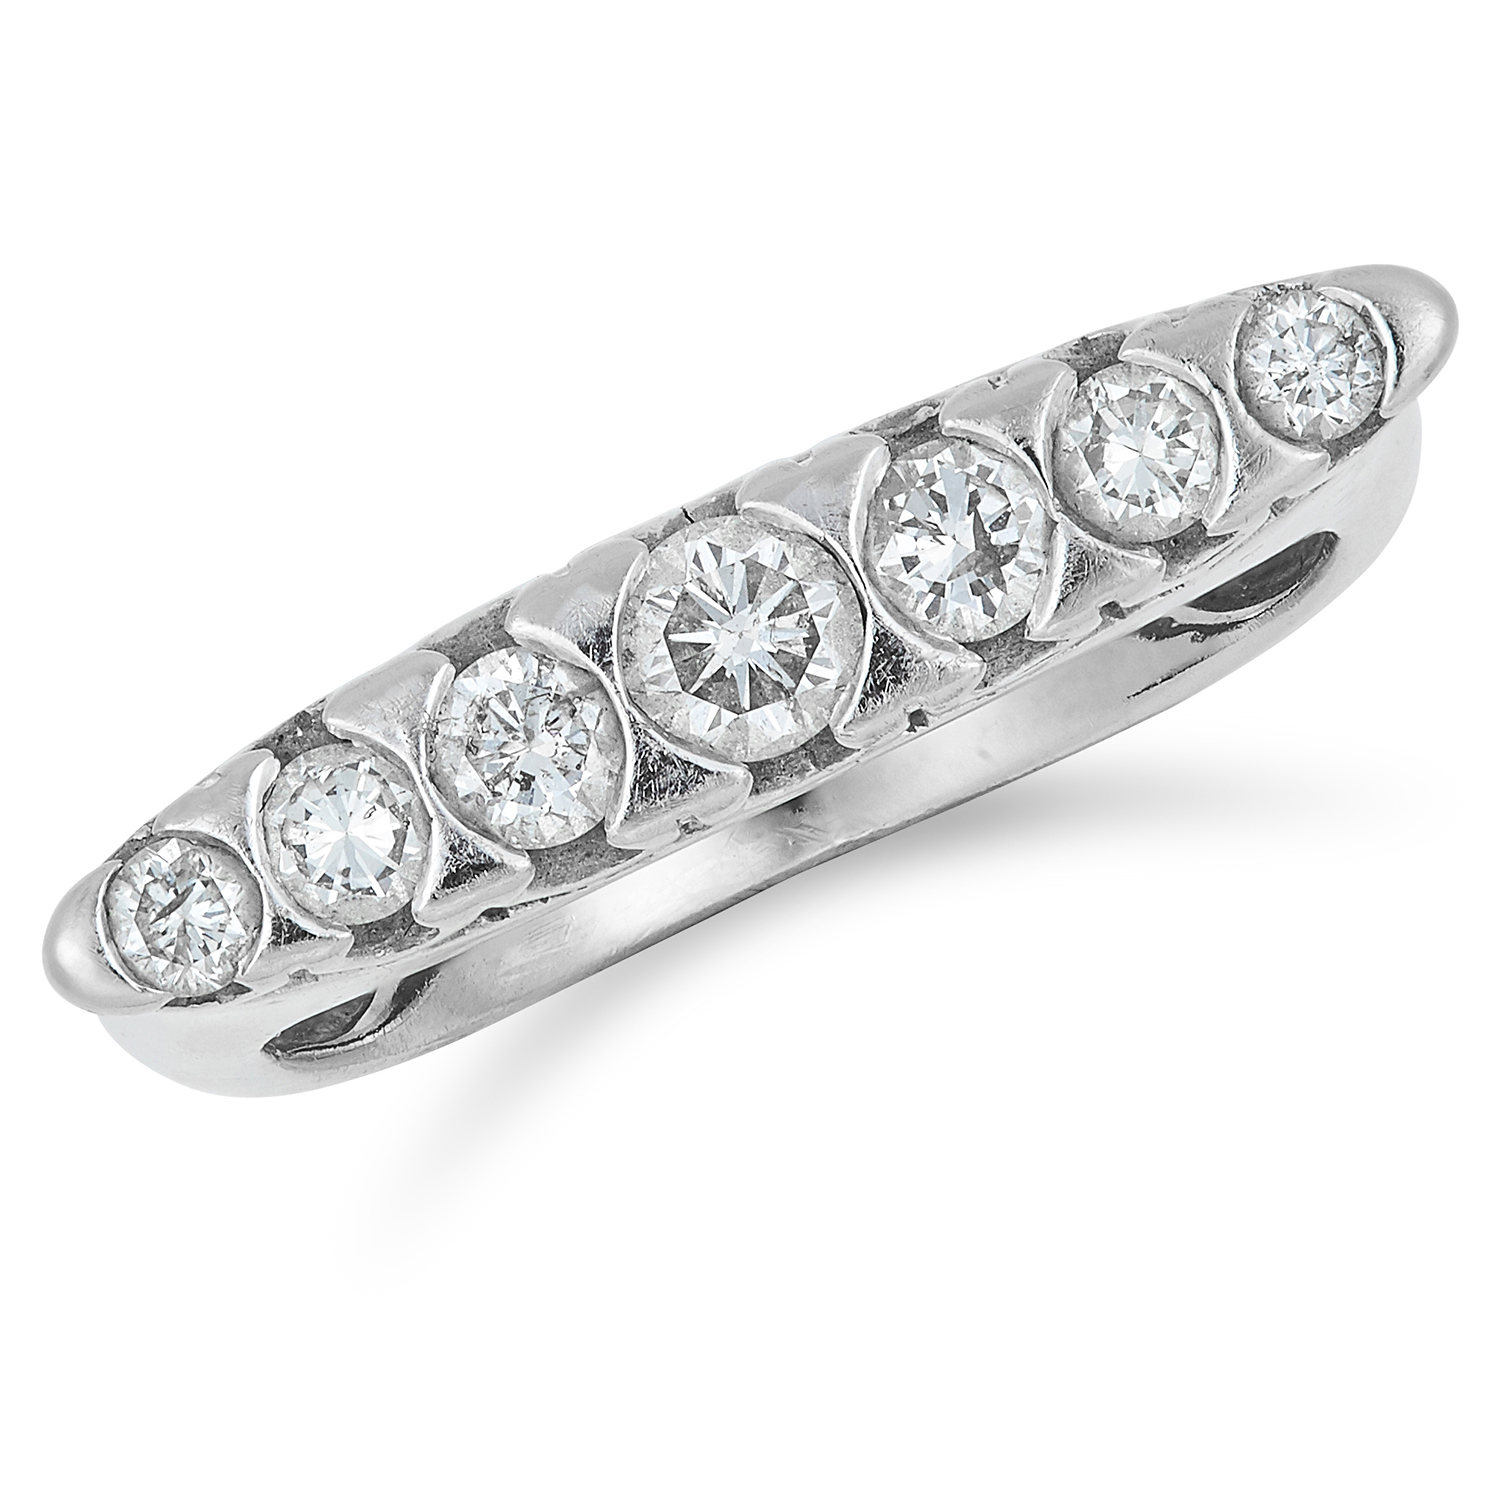 DIAMOND SEVEN STONE RING set with round cut diamonds totalling approximately 0.34 carats, size M /